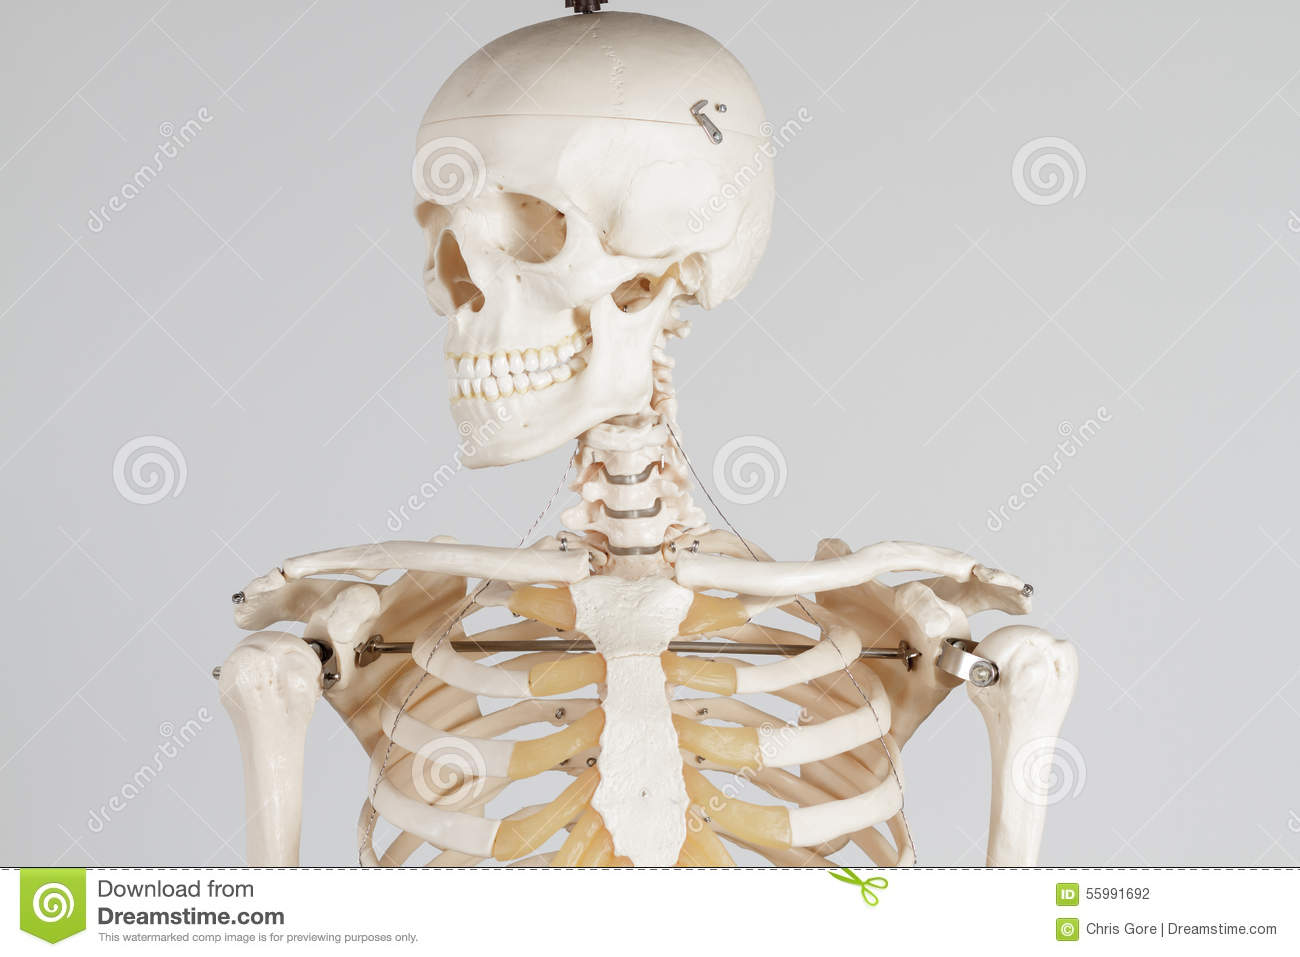 profile of human skeleton royalty free stock image - image: 33639106, Skeleton